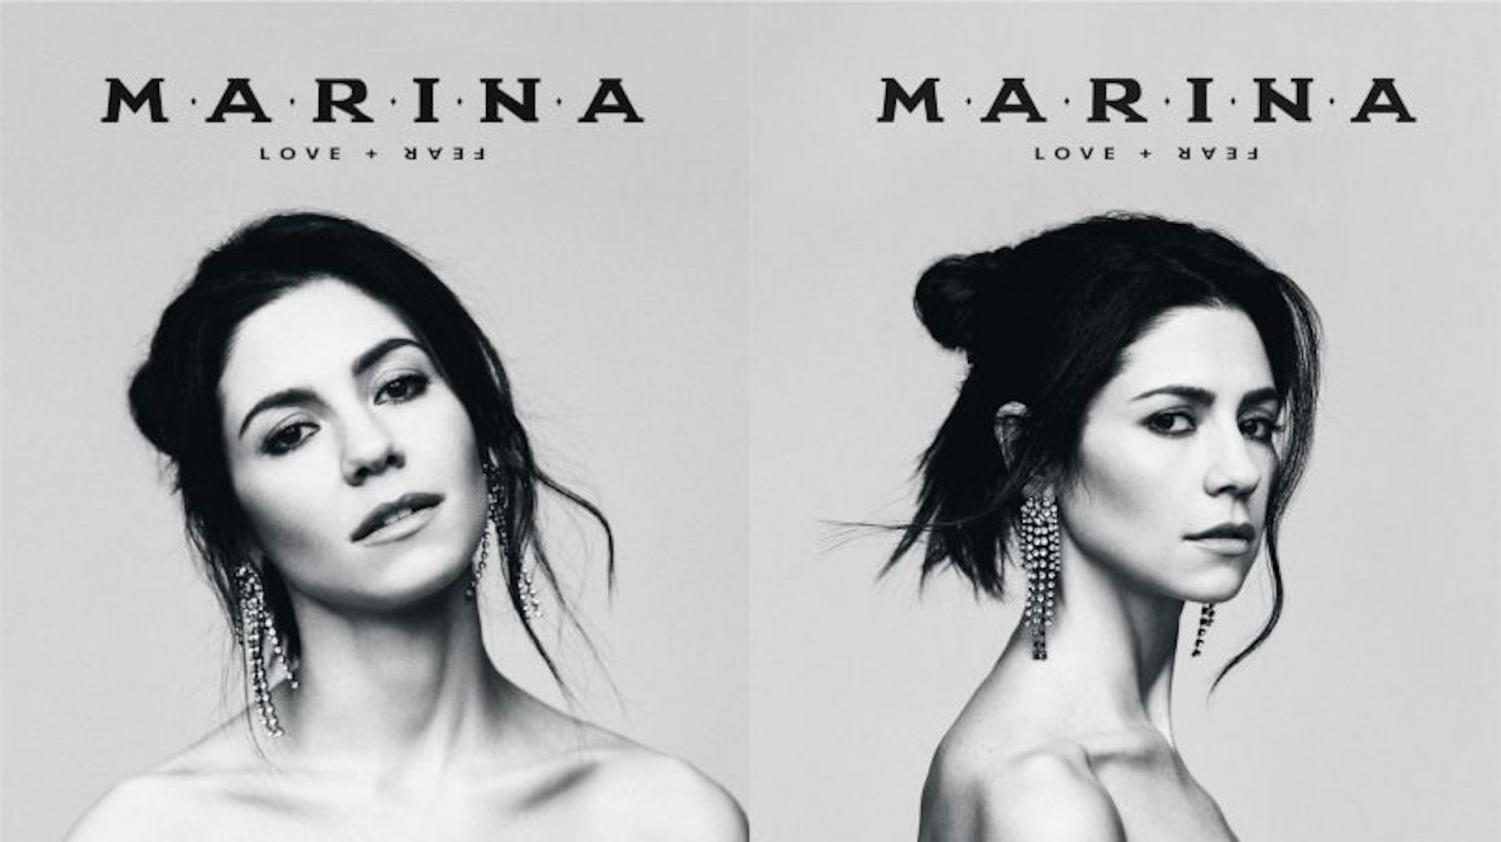 Marina released her jaw-dropping album LOVE + FEAR after a four-year hiatus. Fnas continue to listen to her album in hopes to learn about the various emotions that follow love and fear. After a week of its release, the album peaked at #28 on Billboard 200.